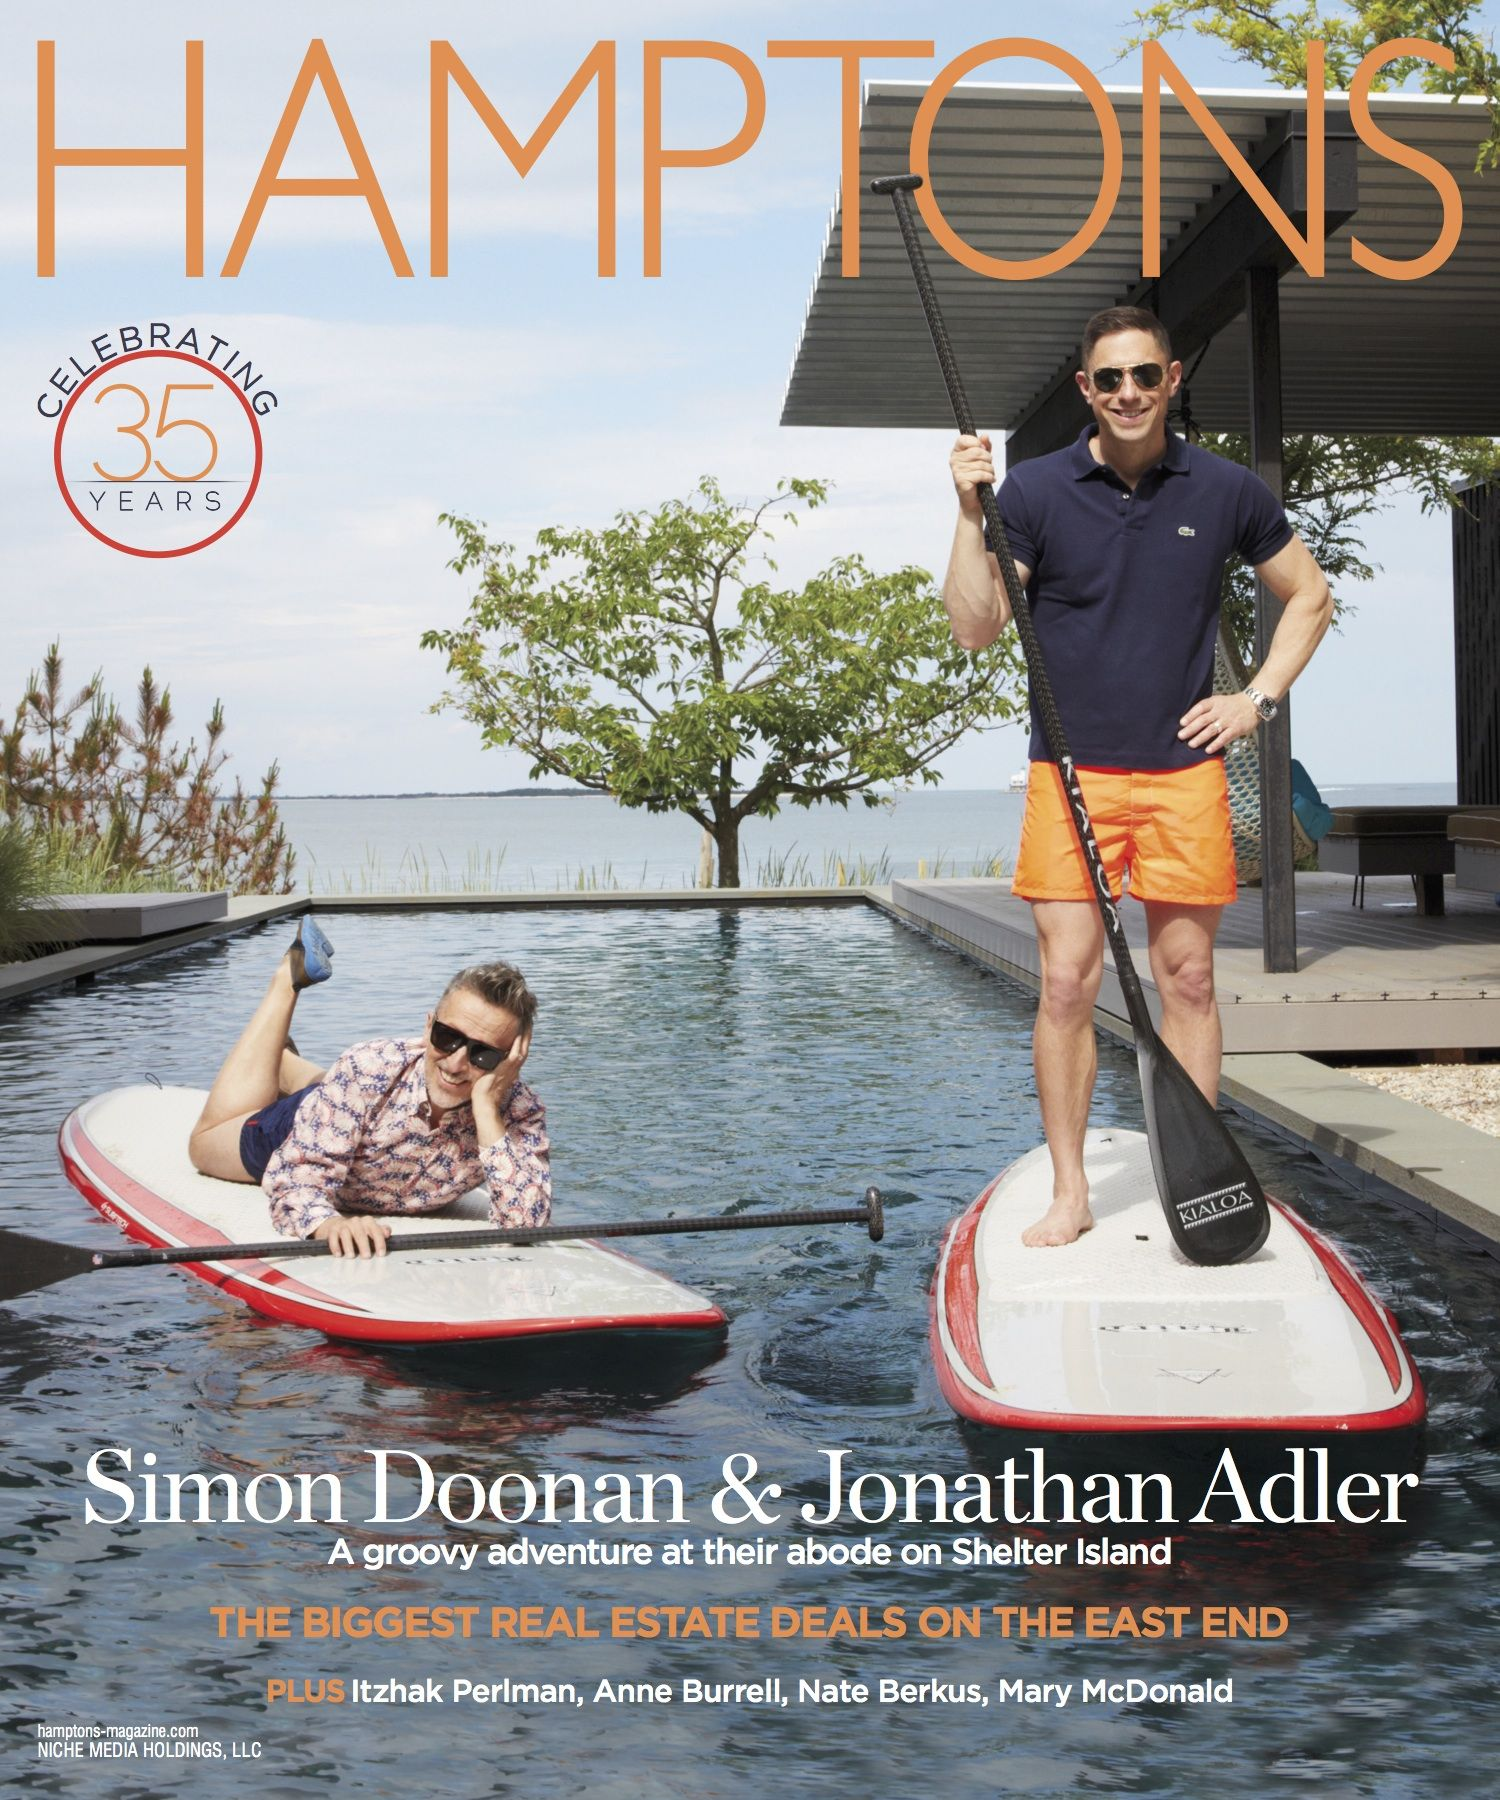 Issue 8 – Simon Doonan & Jonathan Adler